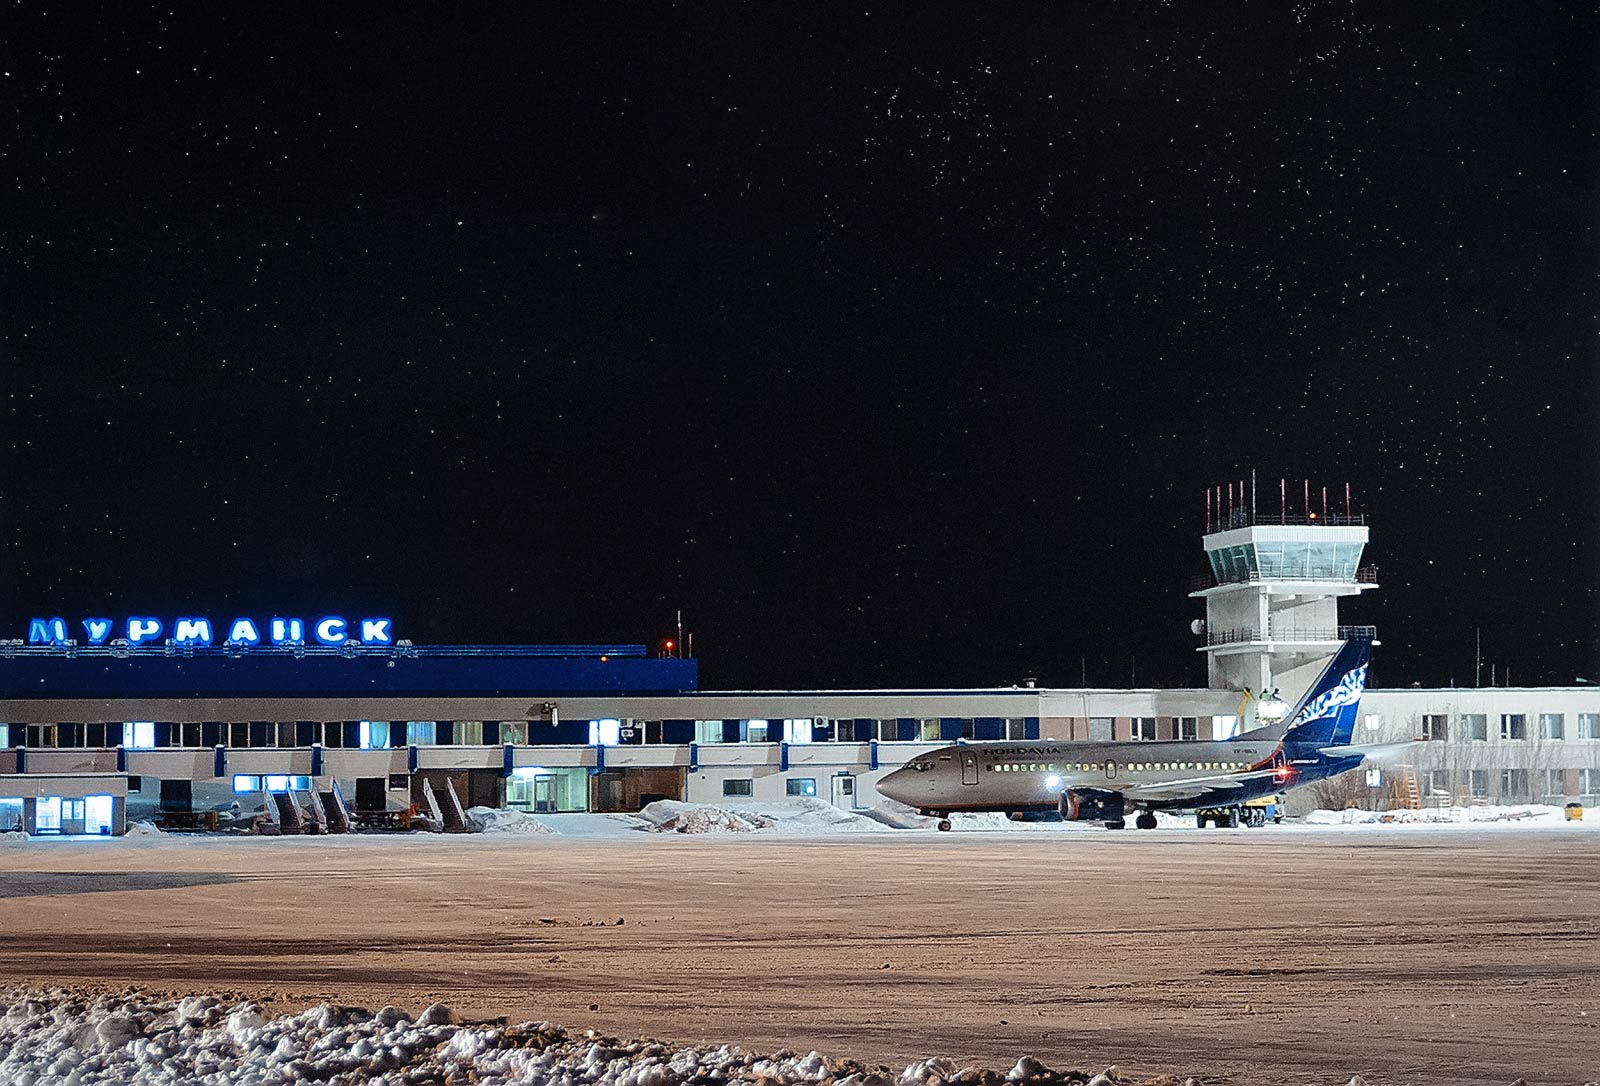 Аэропорт-Мурманск-(Murmansk-Airport).-Расписание-рейсов2